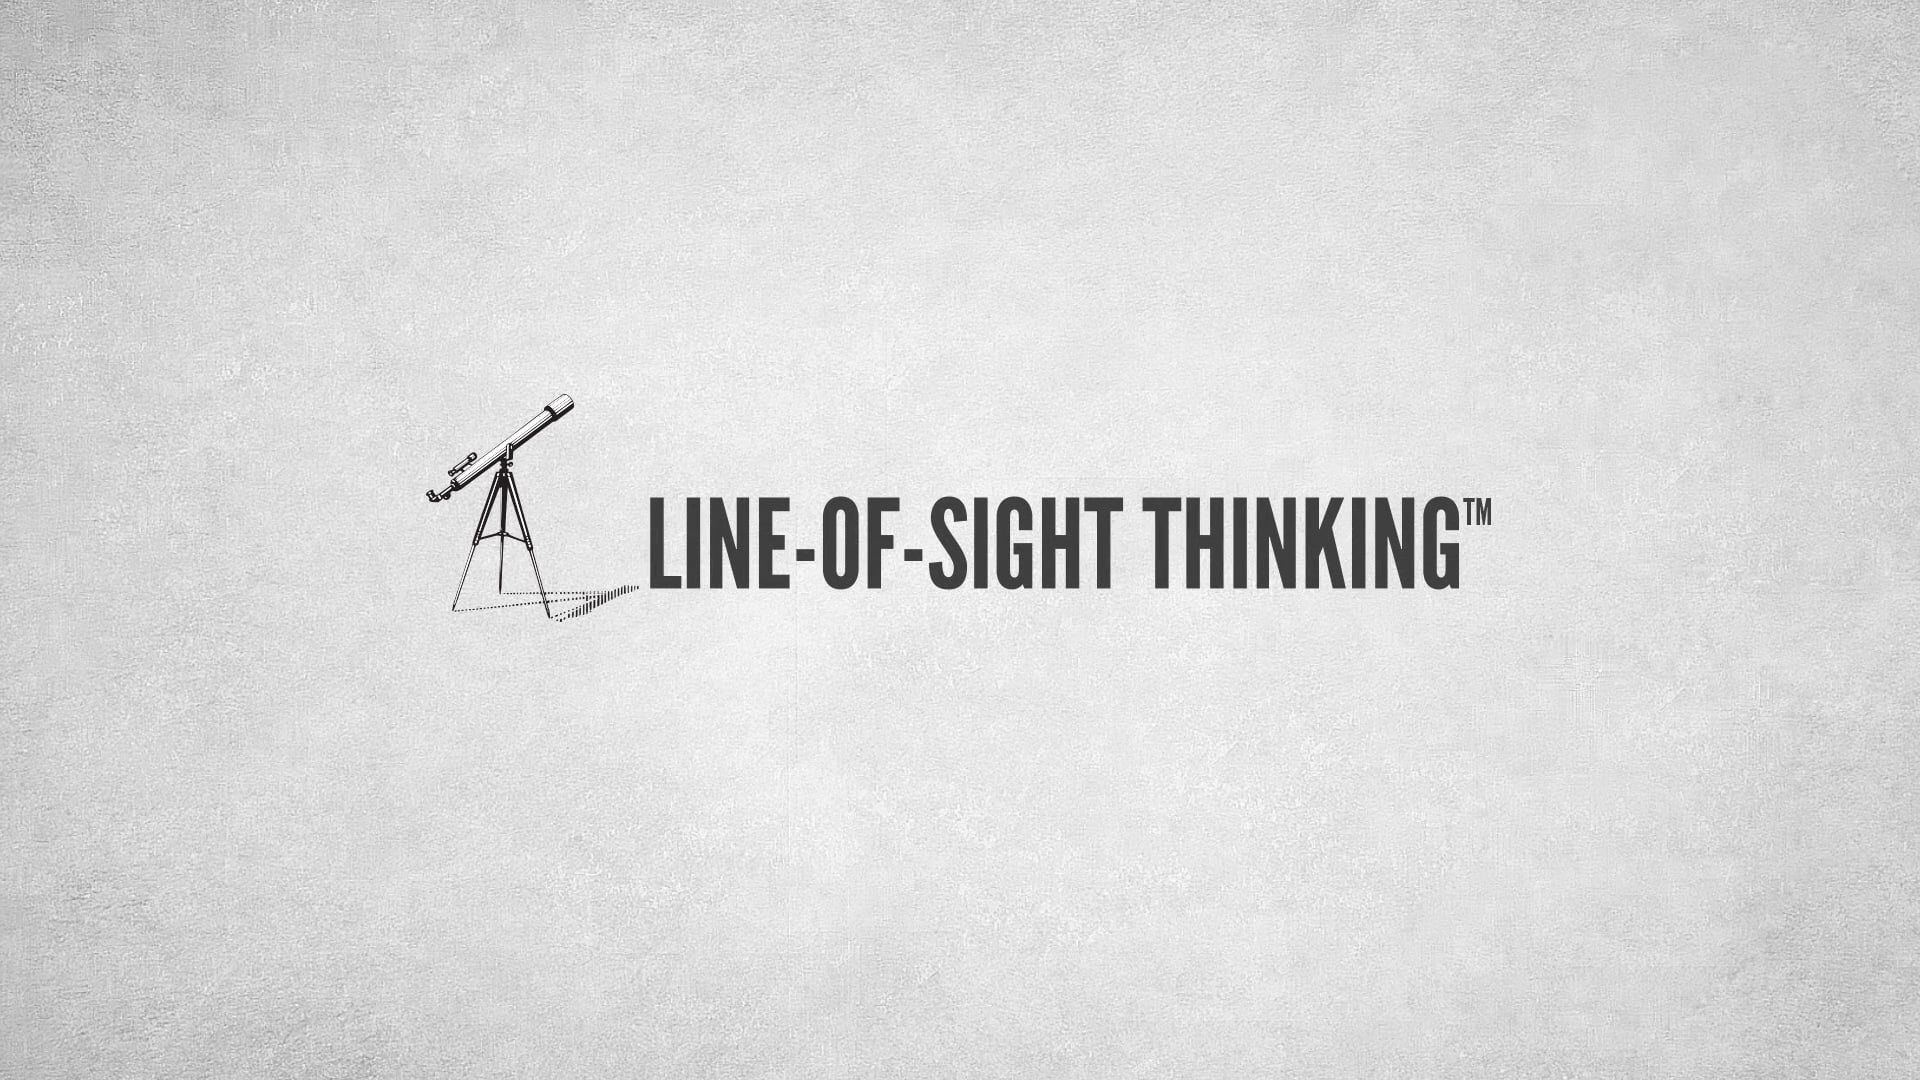 Line-of-Sight Thinking - Align Your Business & Brand Strategy